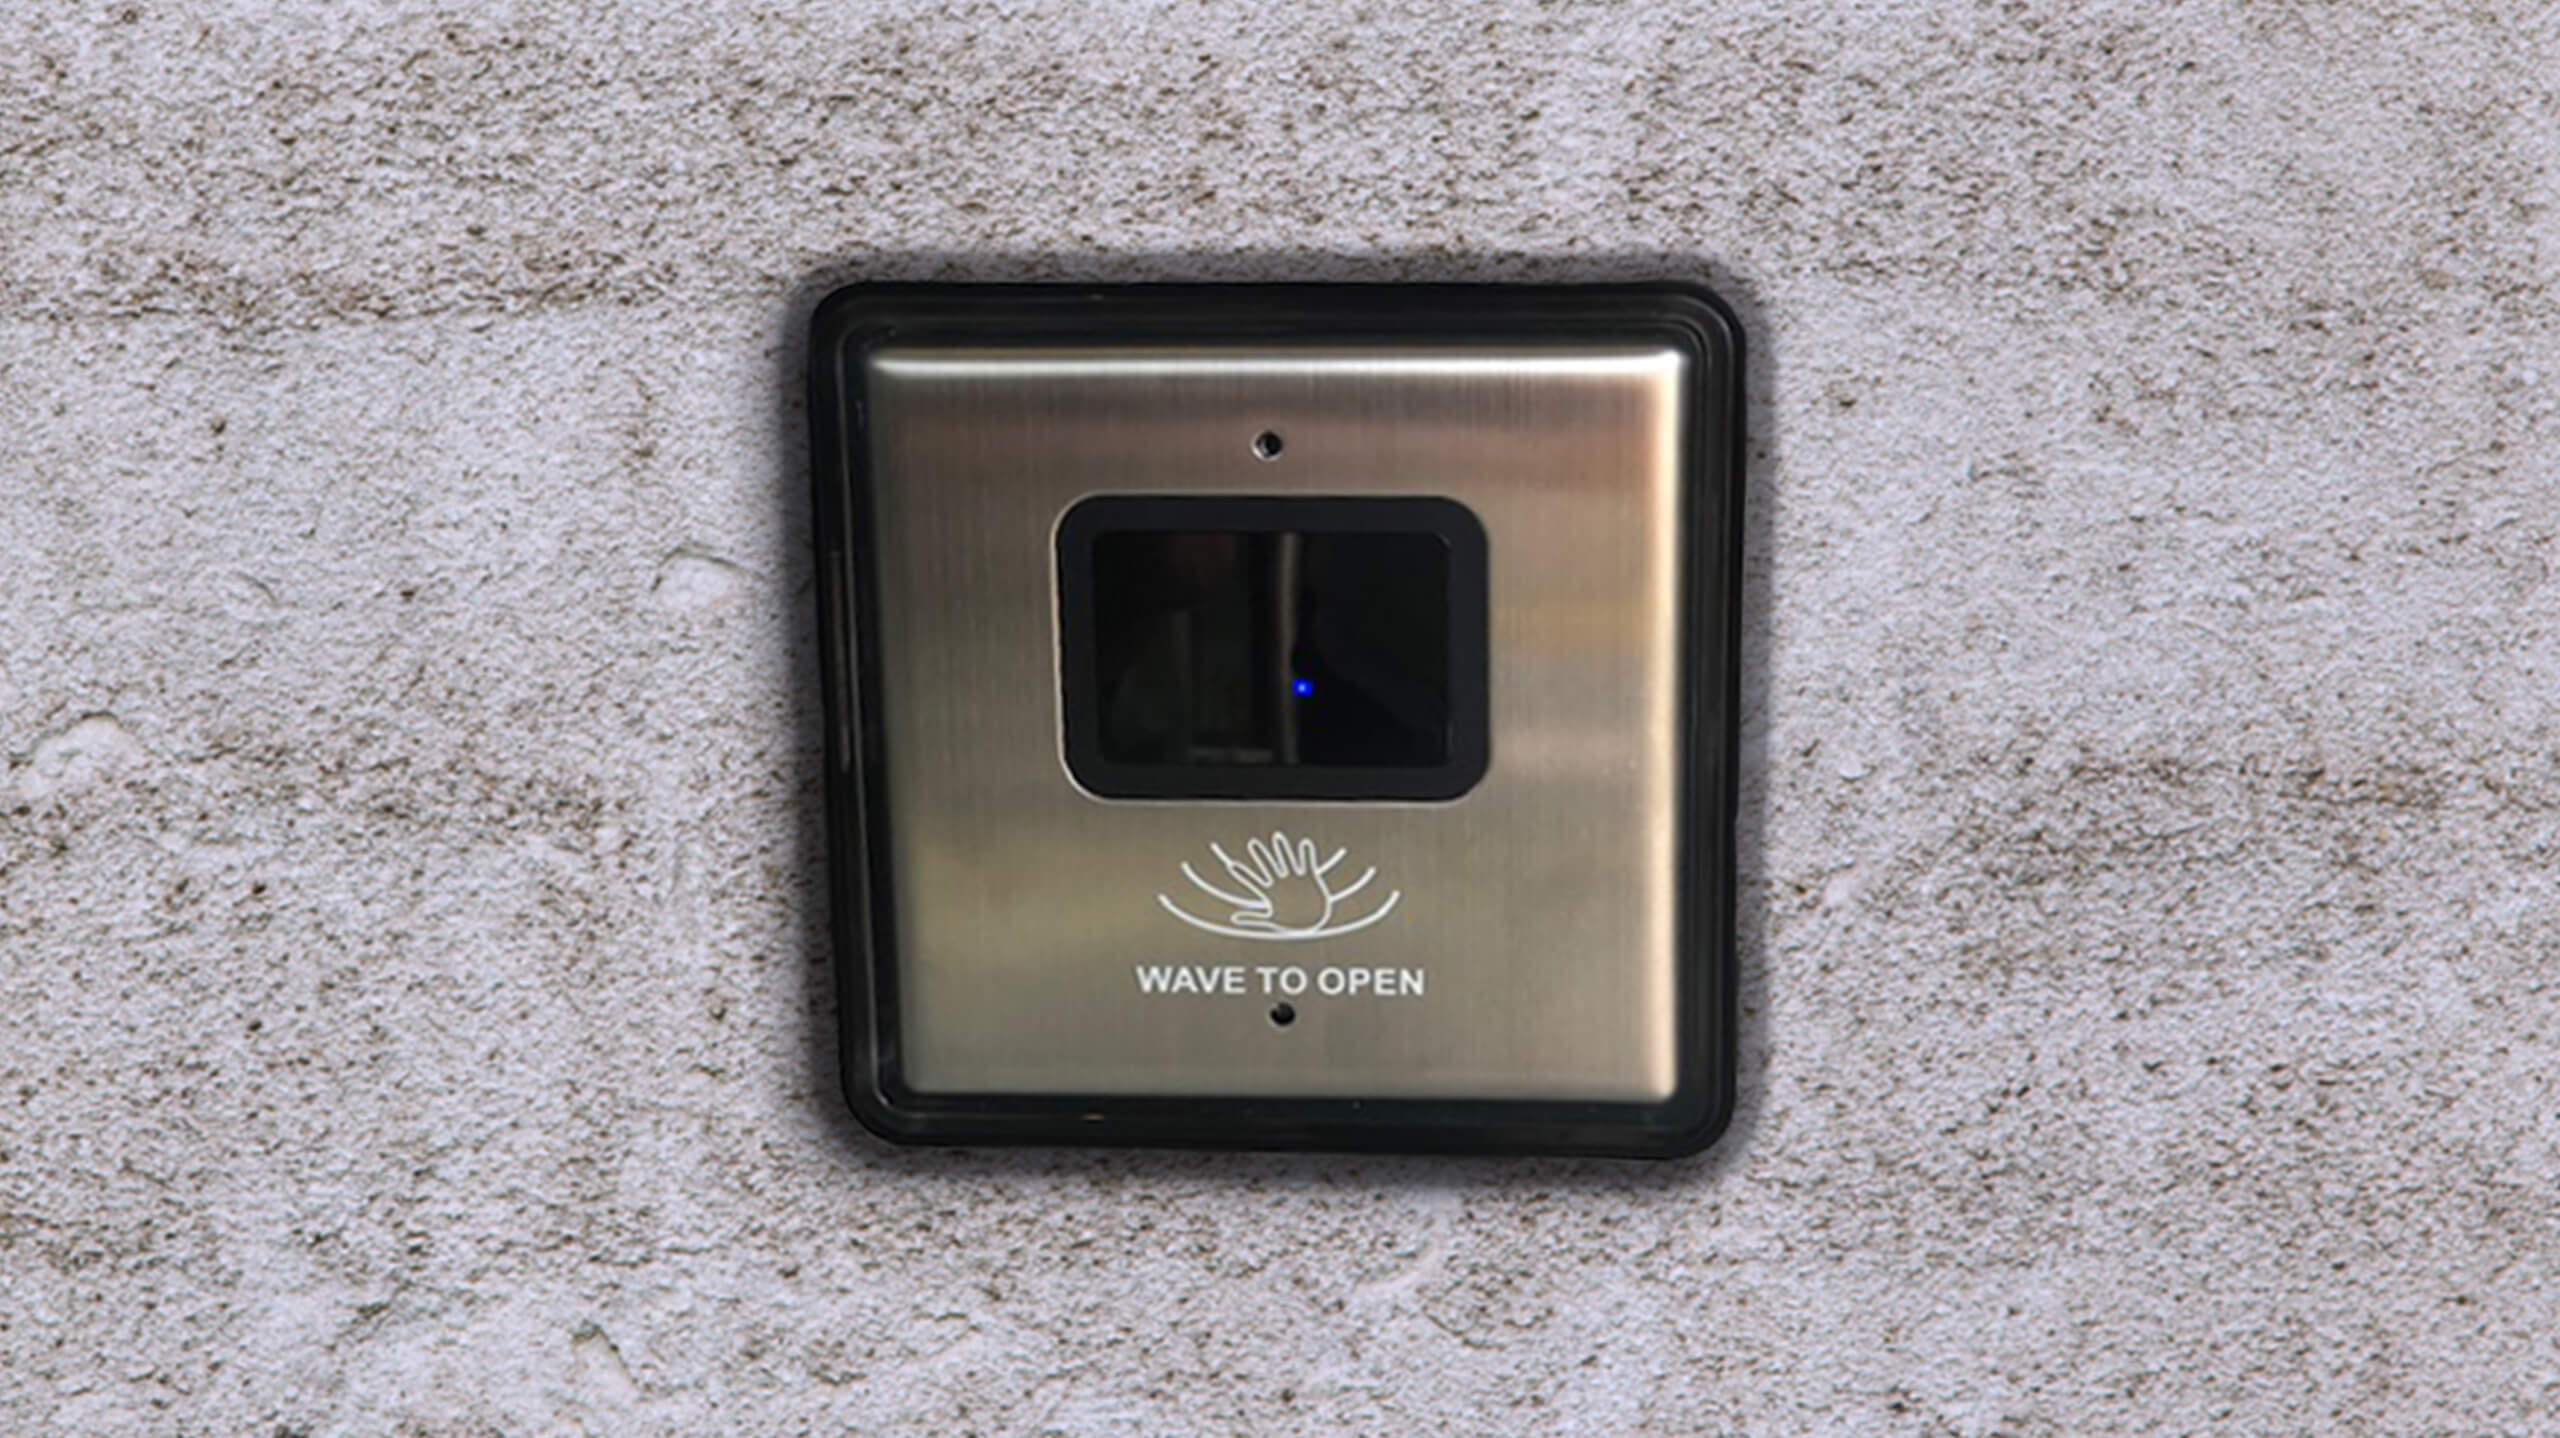 SoHo Hotel touchless wave door sensor